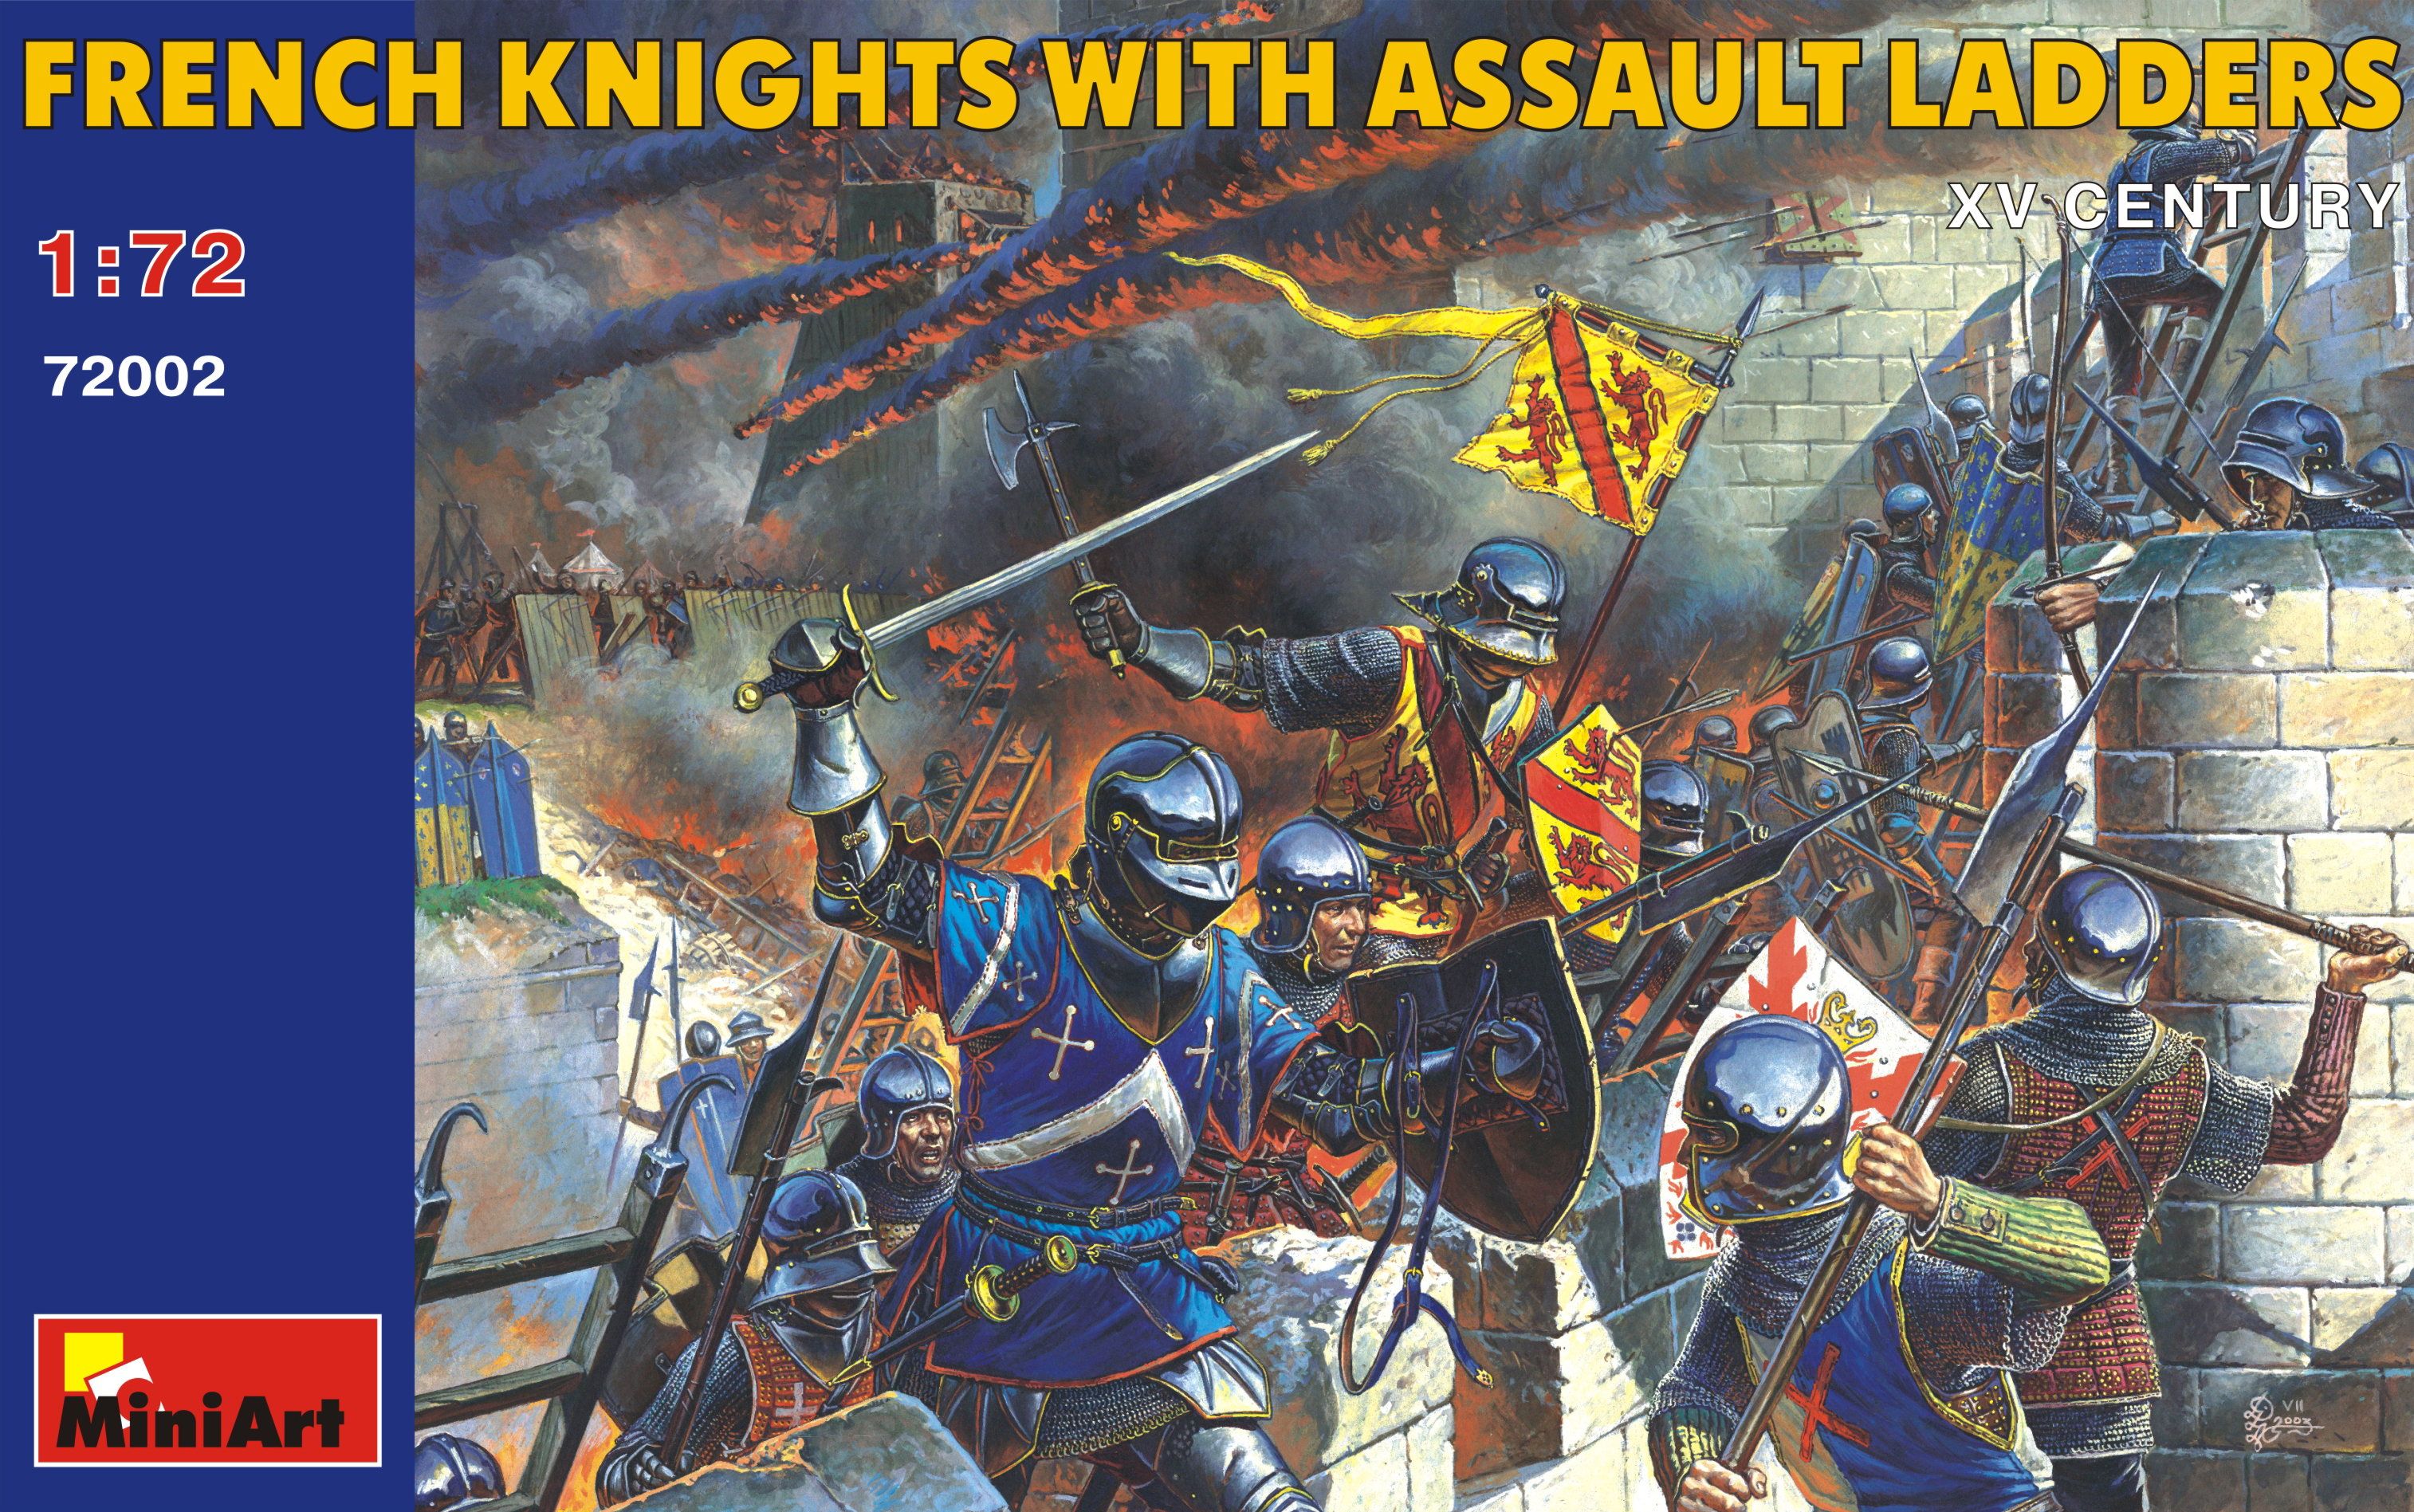 FRENCH KNIGHTS WITH ASSAULT LADEERS XV CENTURY